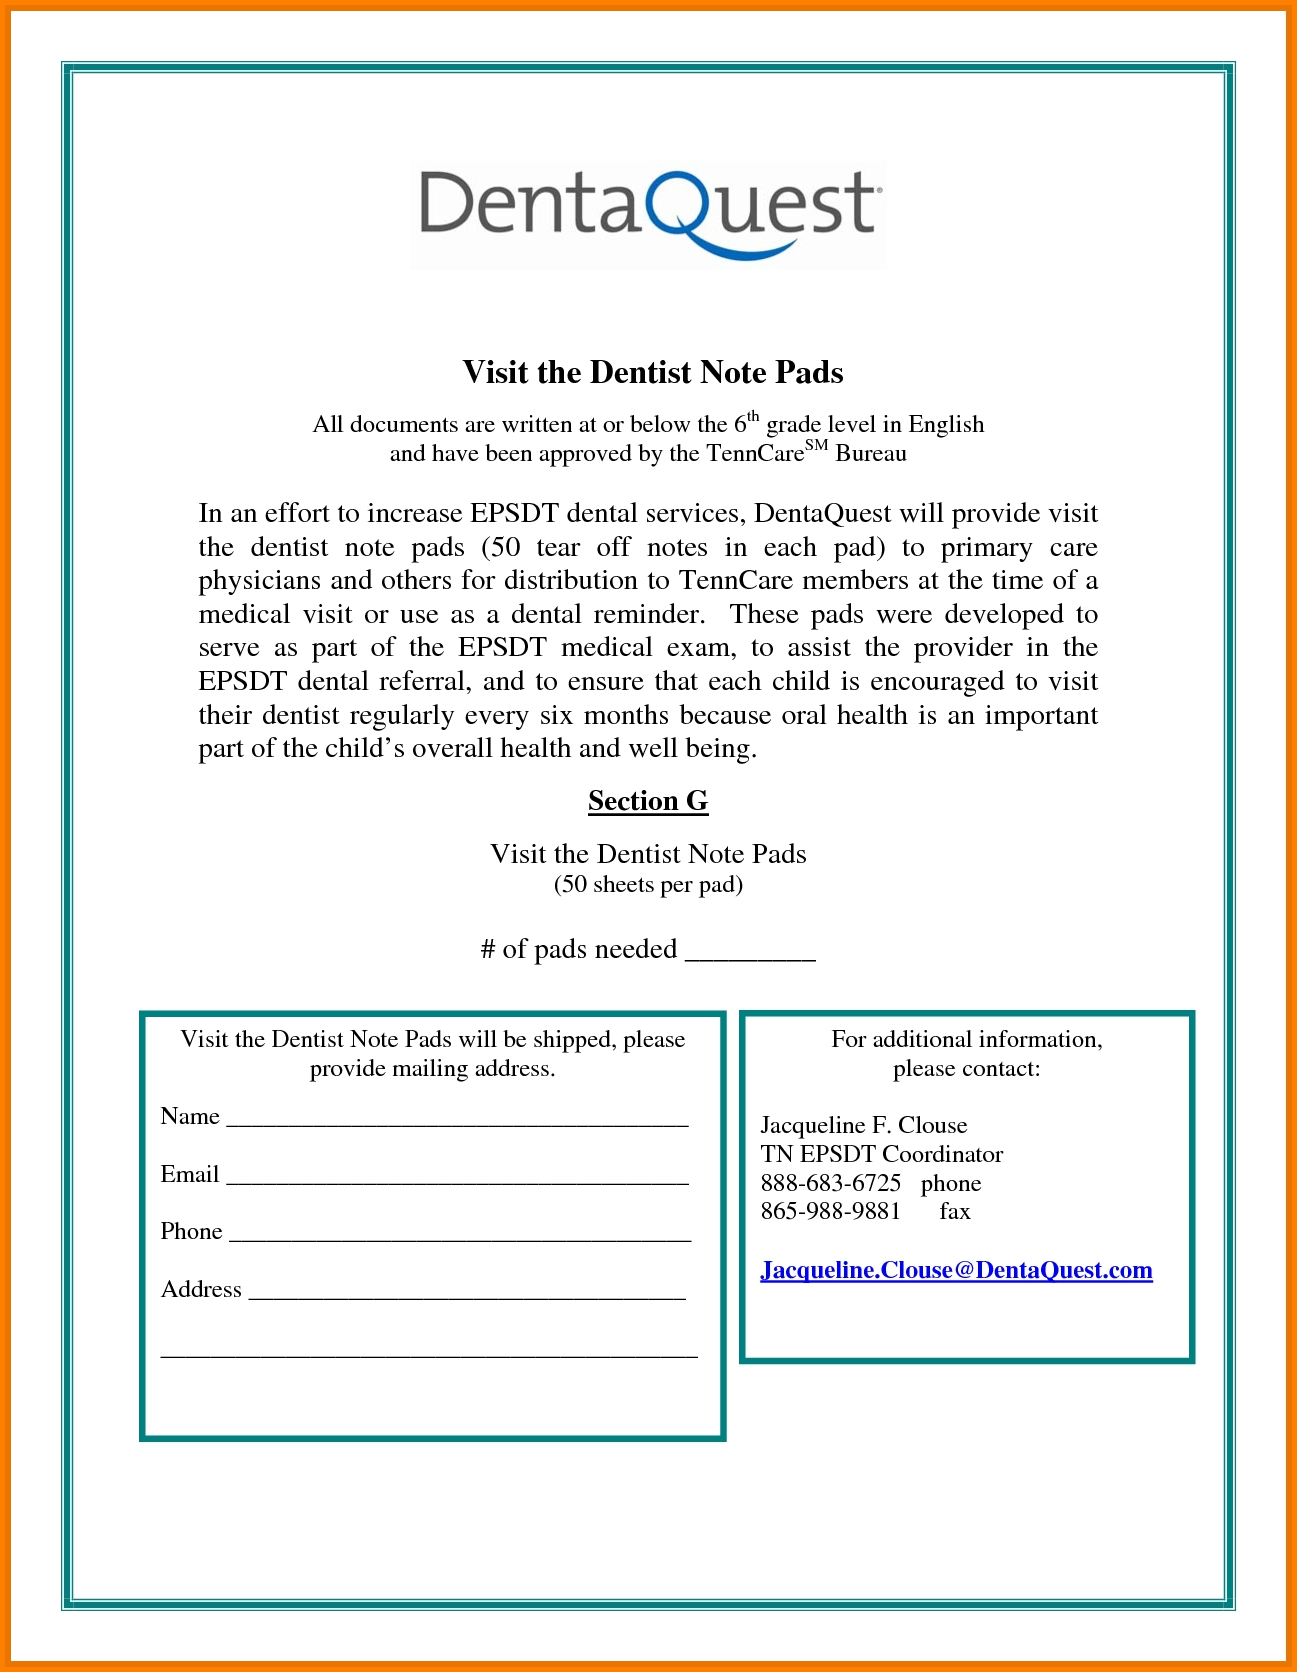 043 Dentist Note Templates Franklinfire Co For Dental Notes Pertaining To Fake Dentist Note Template